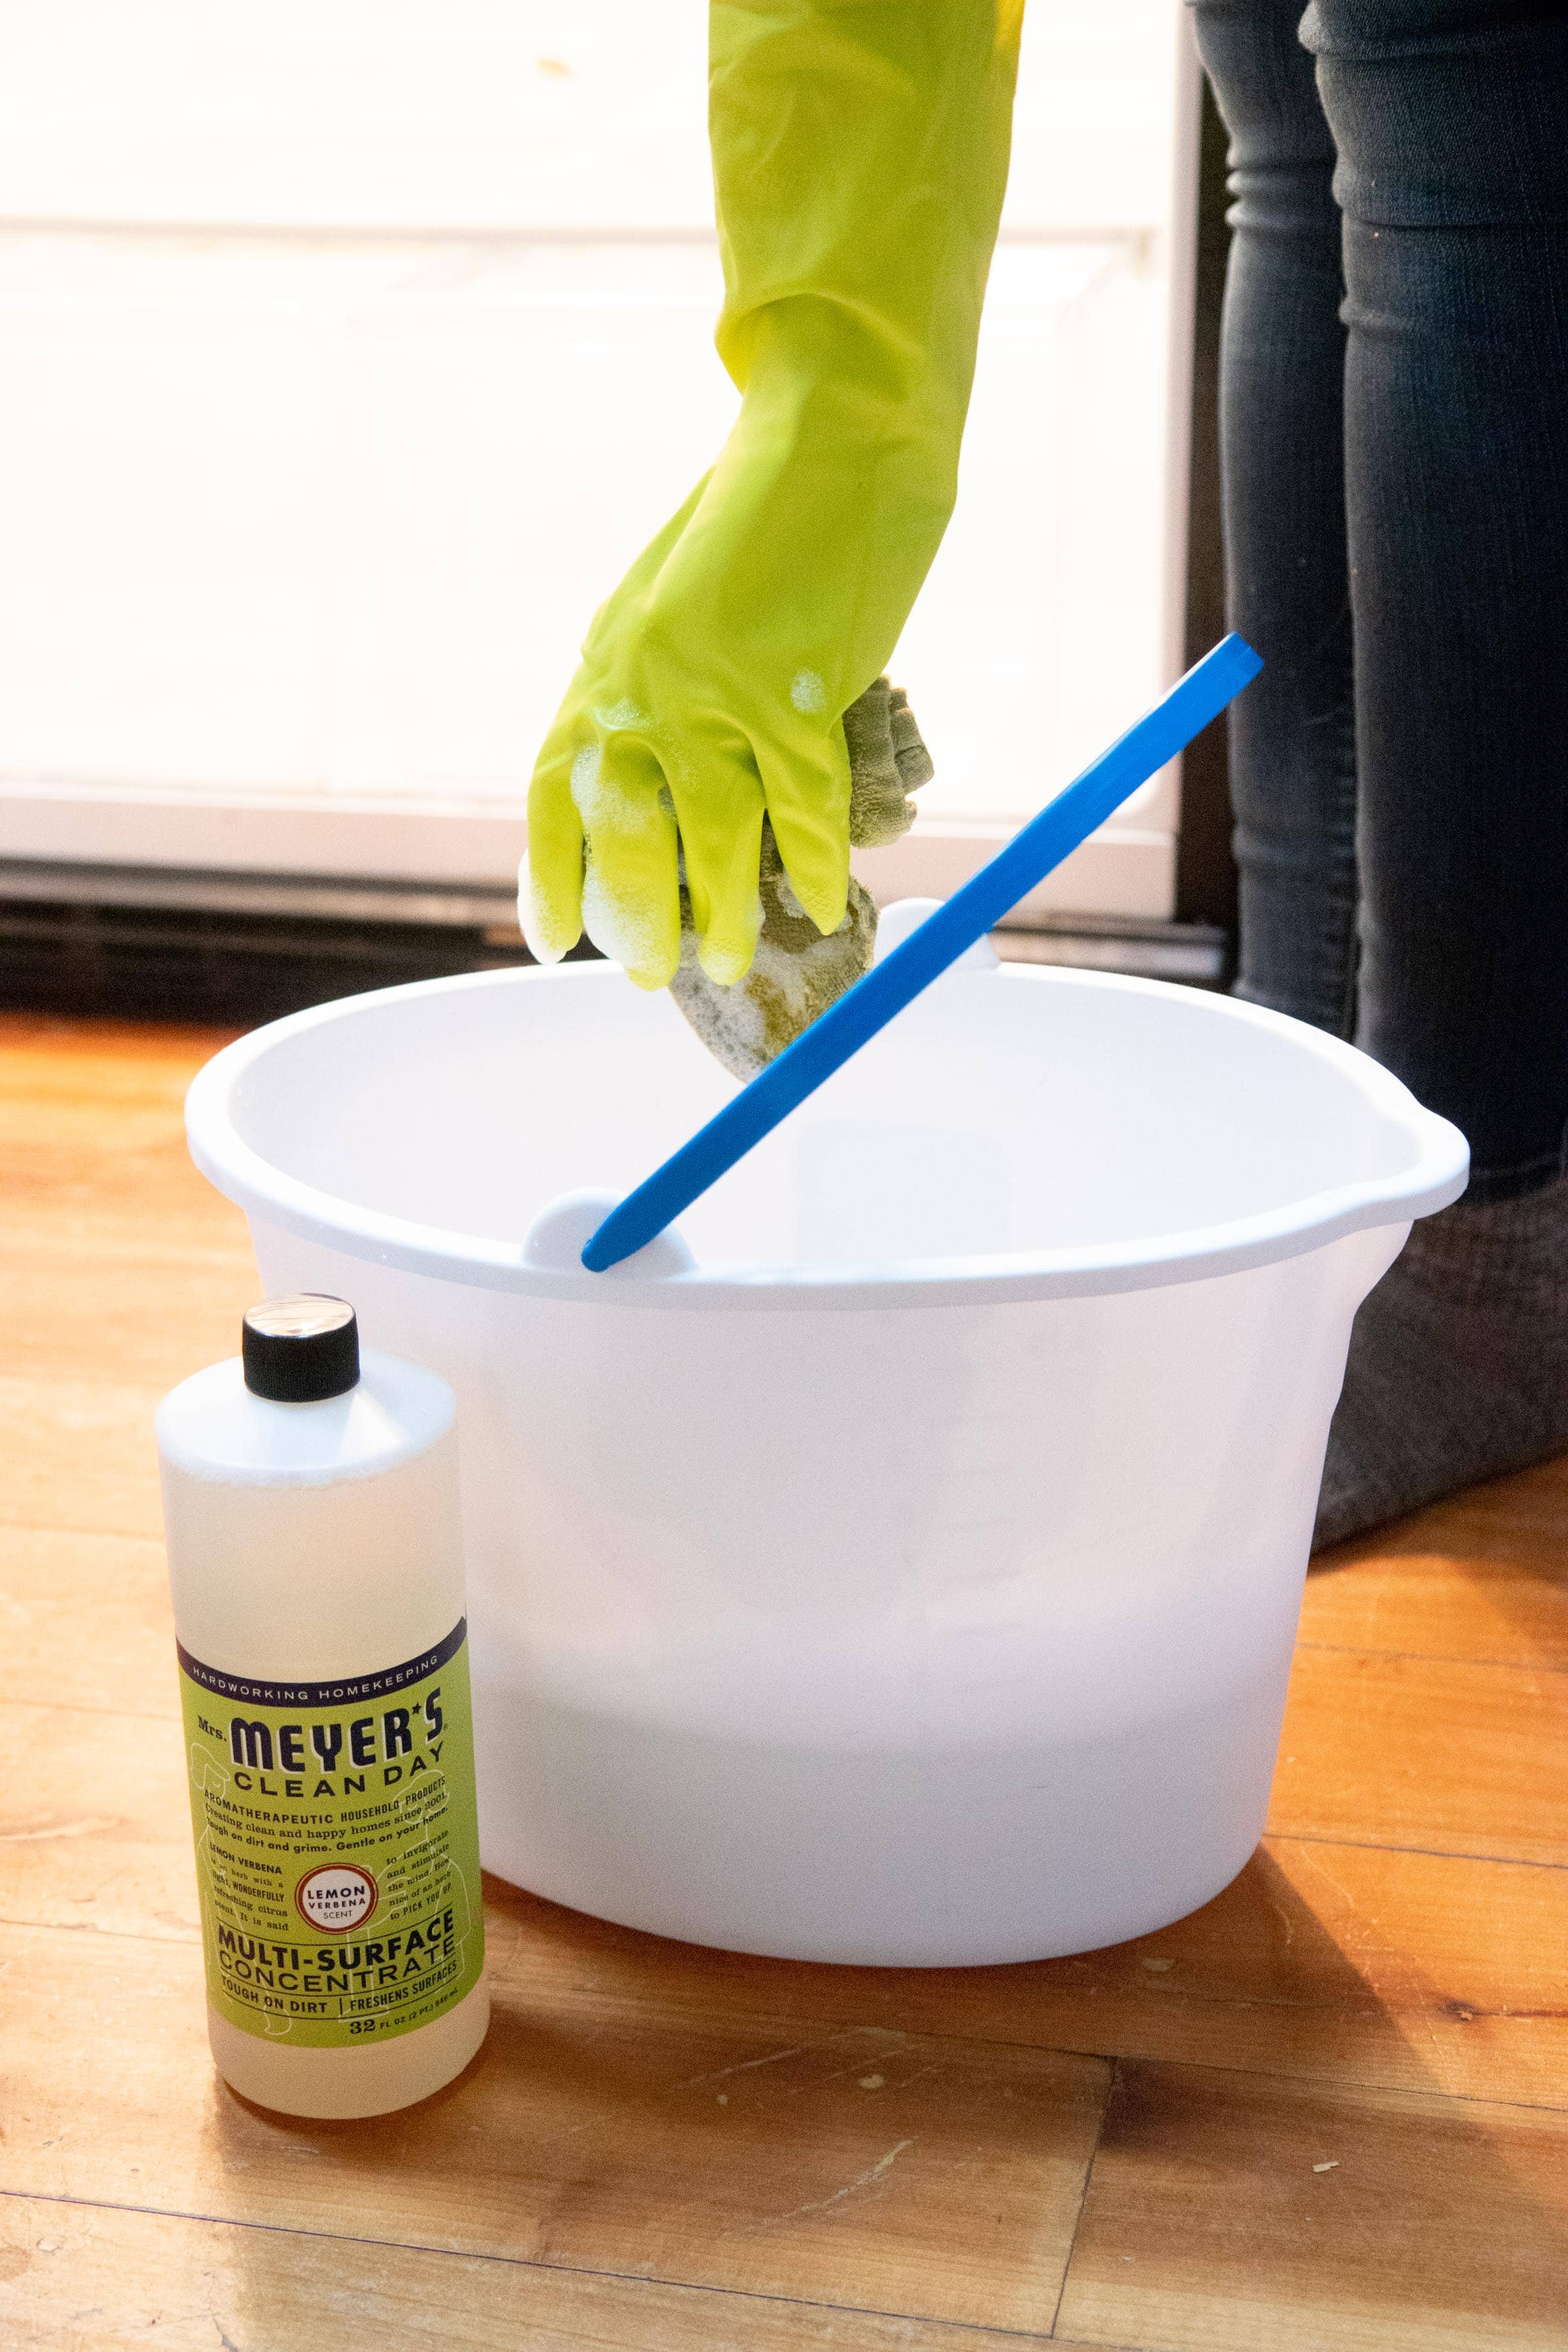 Hand in a lime green dish glove holding a soapy sponge above a mop bucket, with a bottle of Meyer's Clean Day all-purpose cleaner in front of it